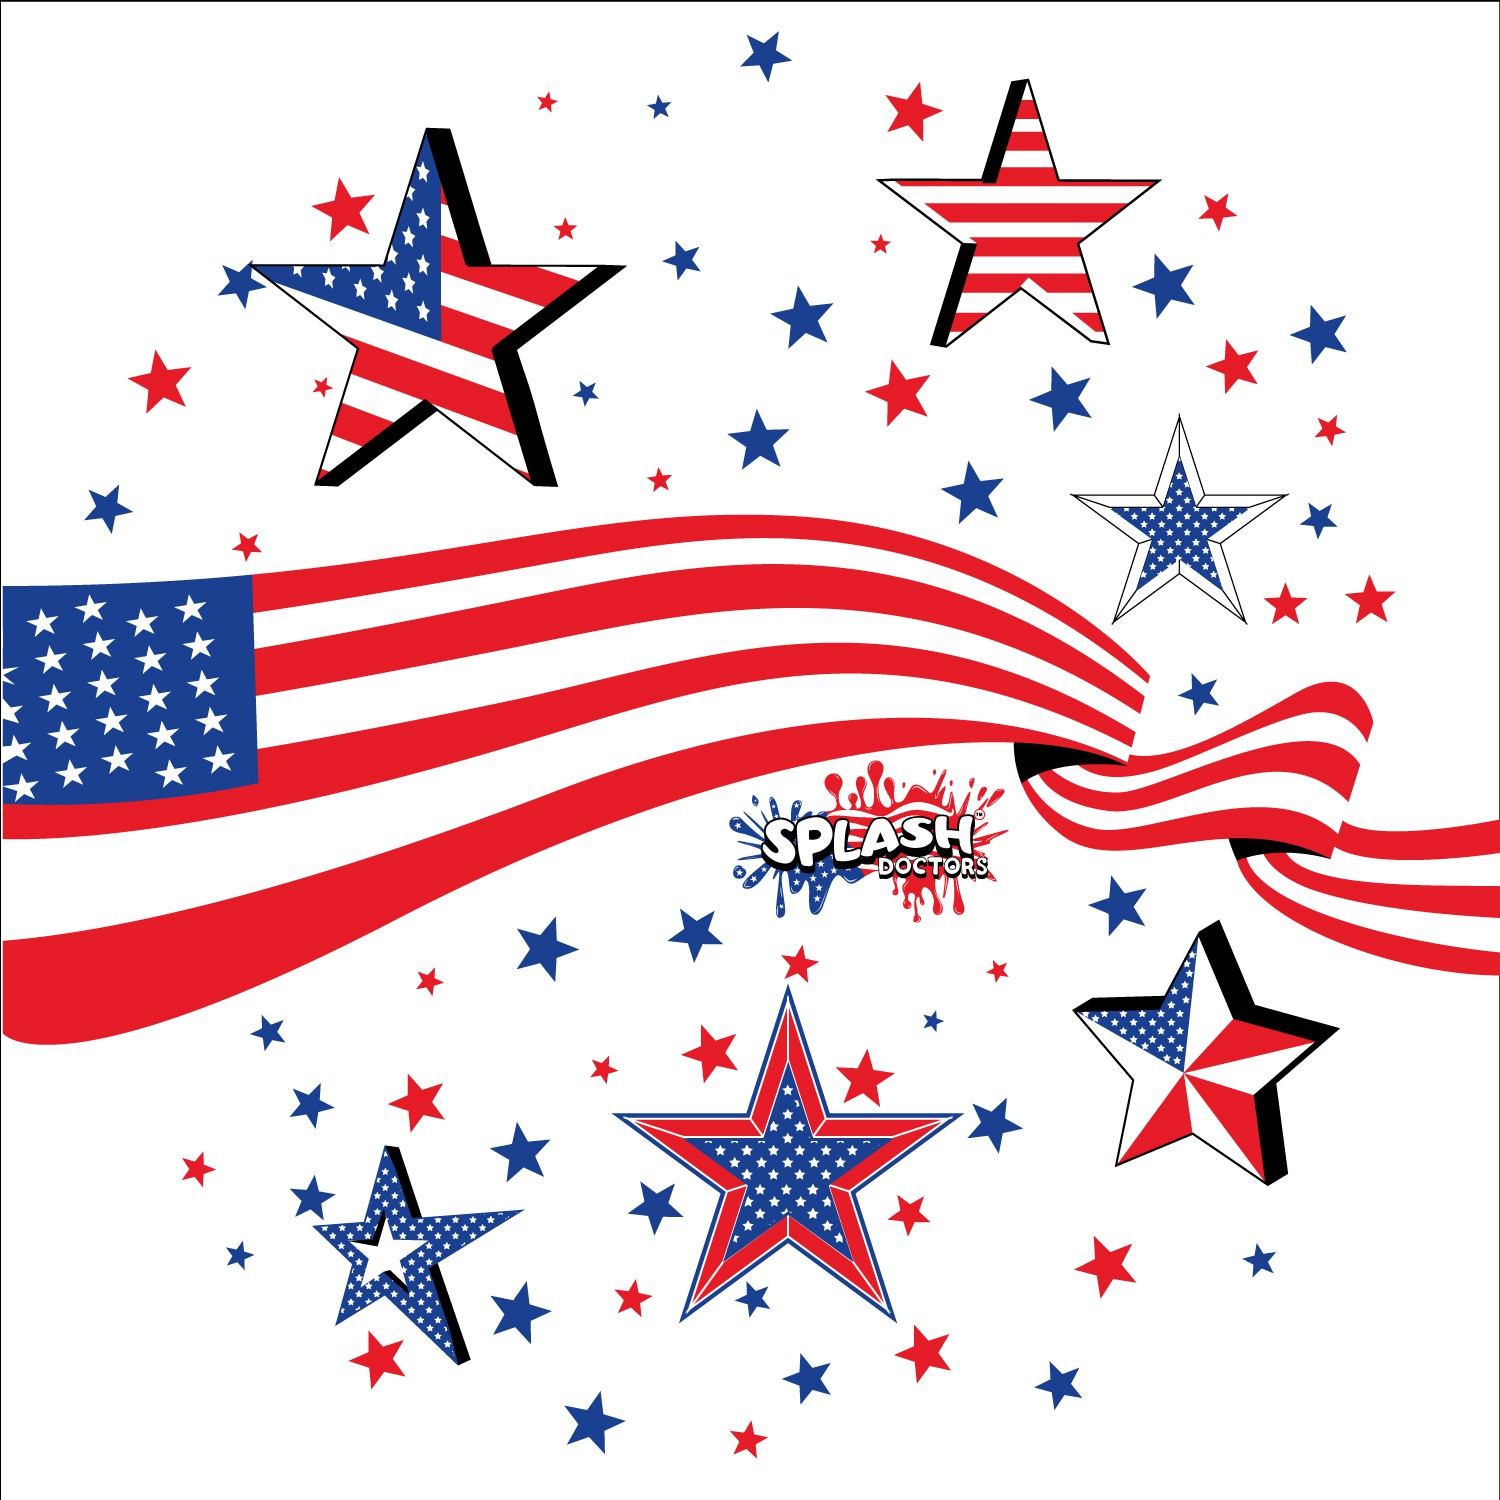 Create a PATRIOTIC DESIGN to be printed on a toddler/kids splash mat/sprinkler